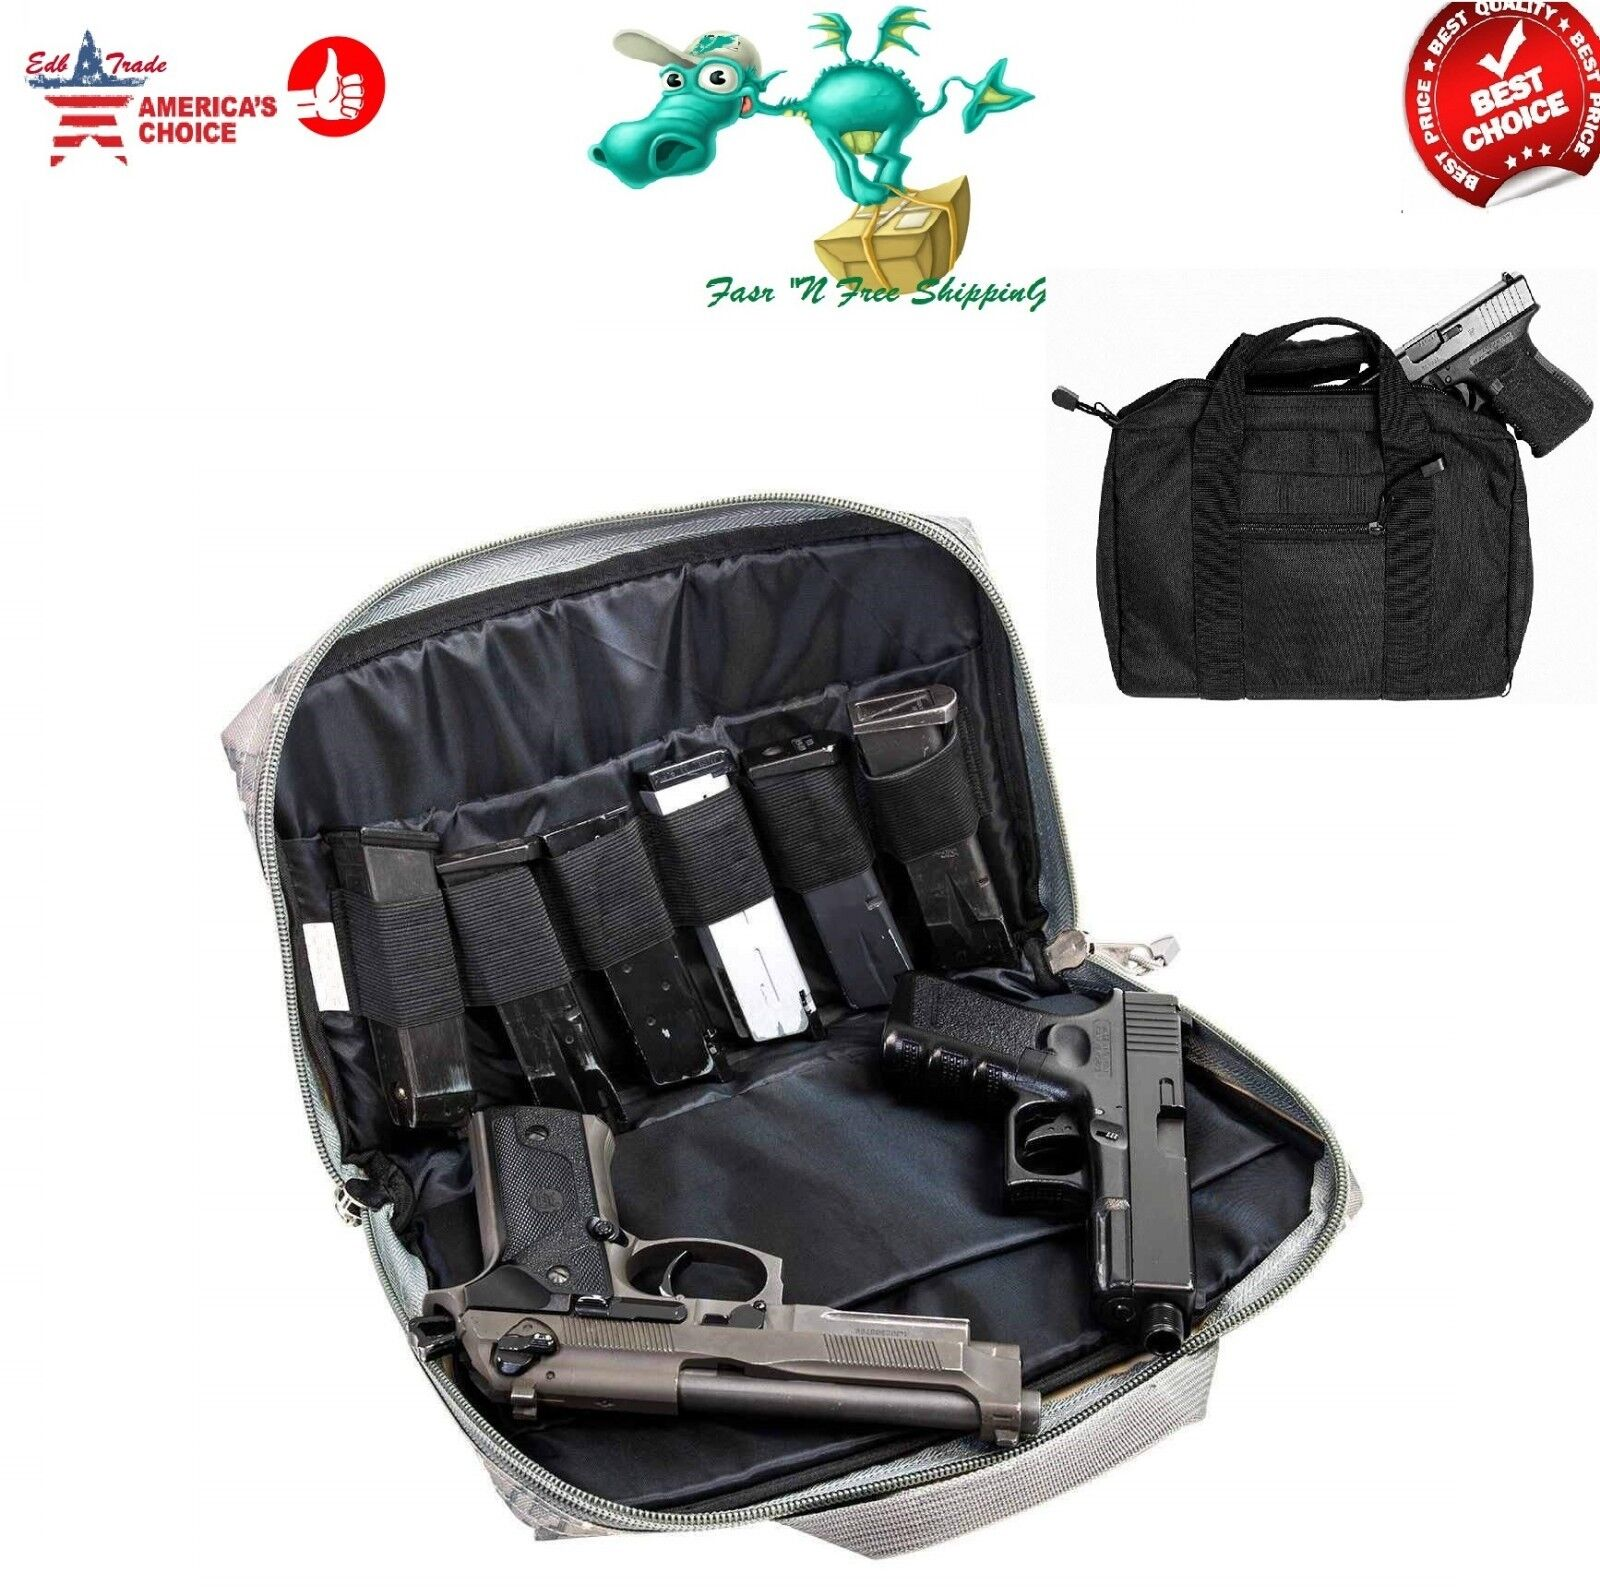 Black Dual Double Pistol Handgun Soft Carry Case Bag Holds 2